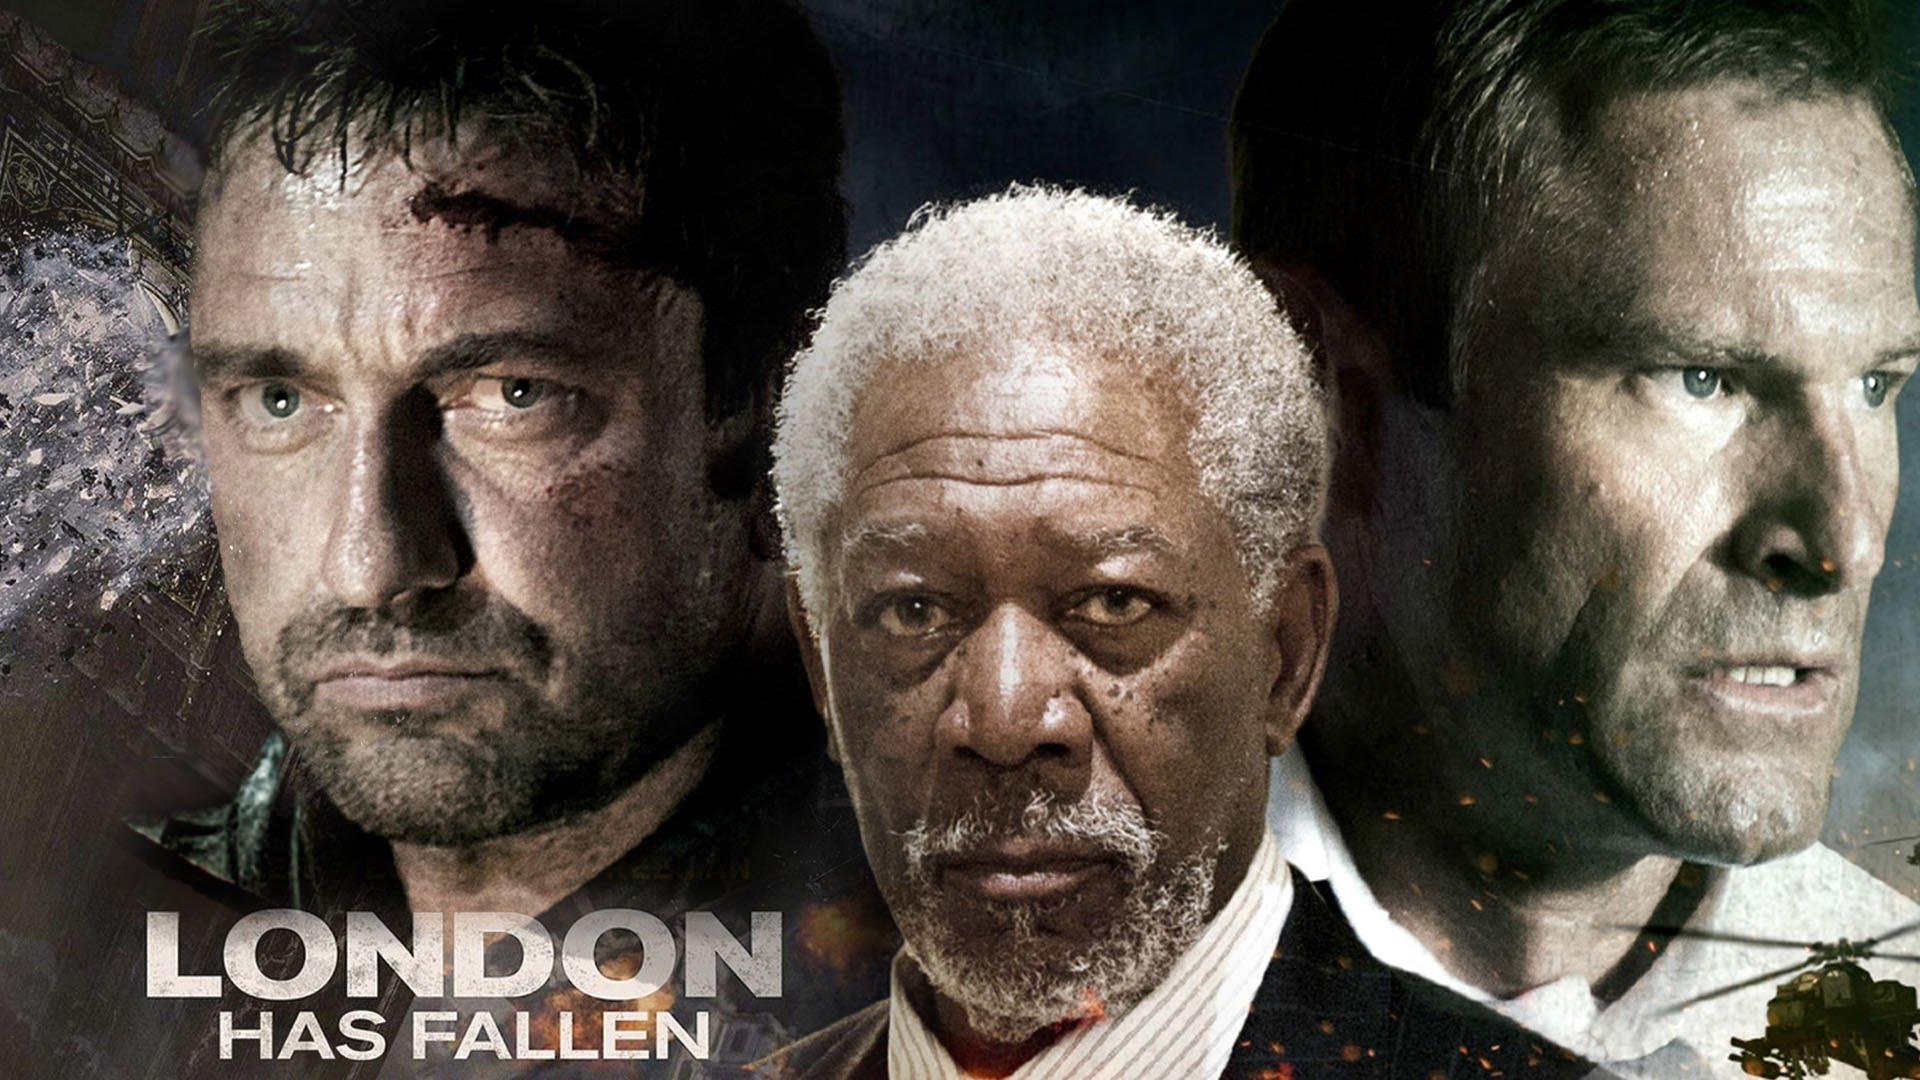 London Has Fallen Wallpaper   HD Wallpapers Backgrounds of Your Choice 1920x1080